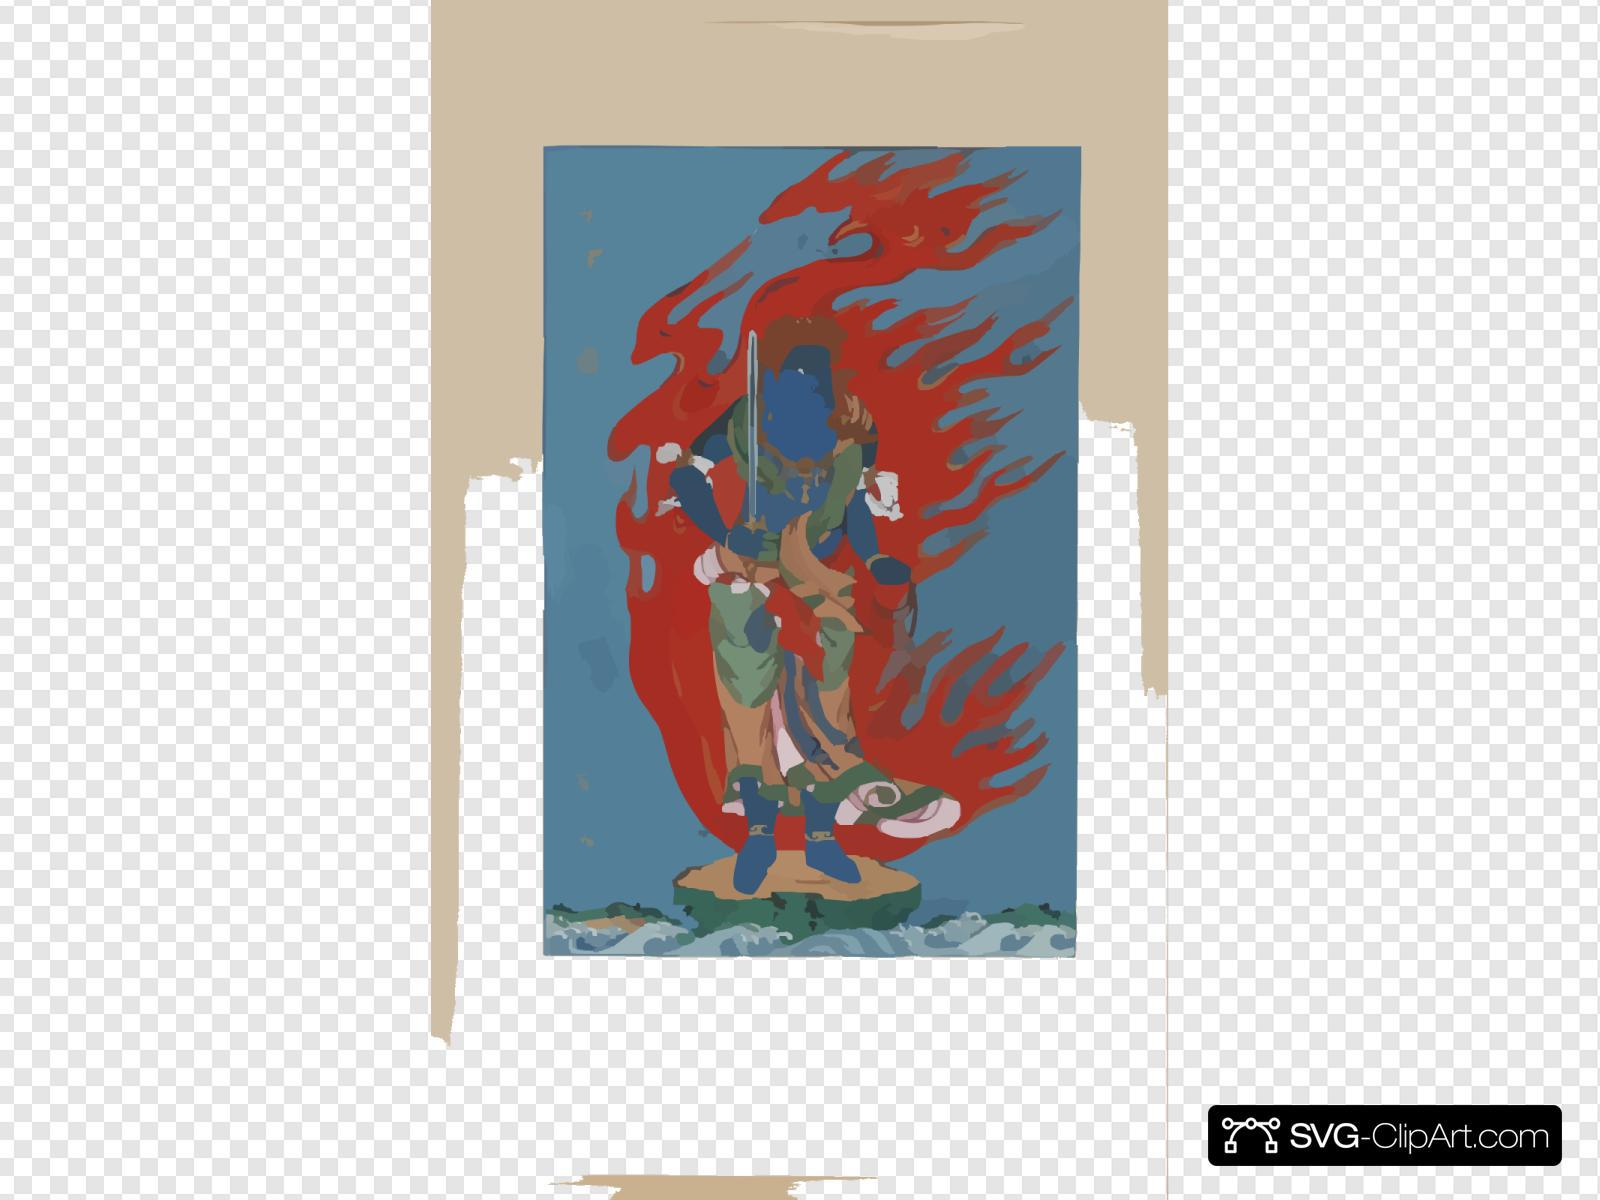 [mythological Blue Buddhist Or Hindu Figure, Full-length, Standing On Small Island Among Waves, Facing Right, Against Backdrop Of Flames With Phoenix Head]